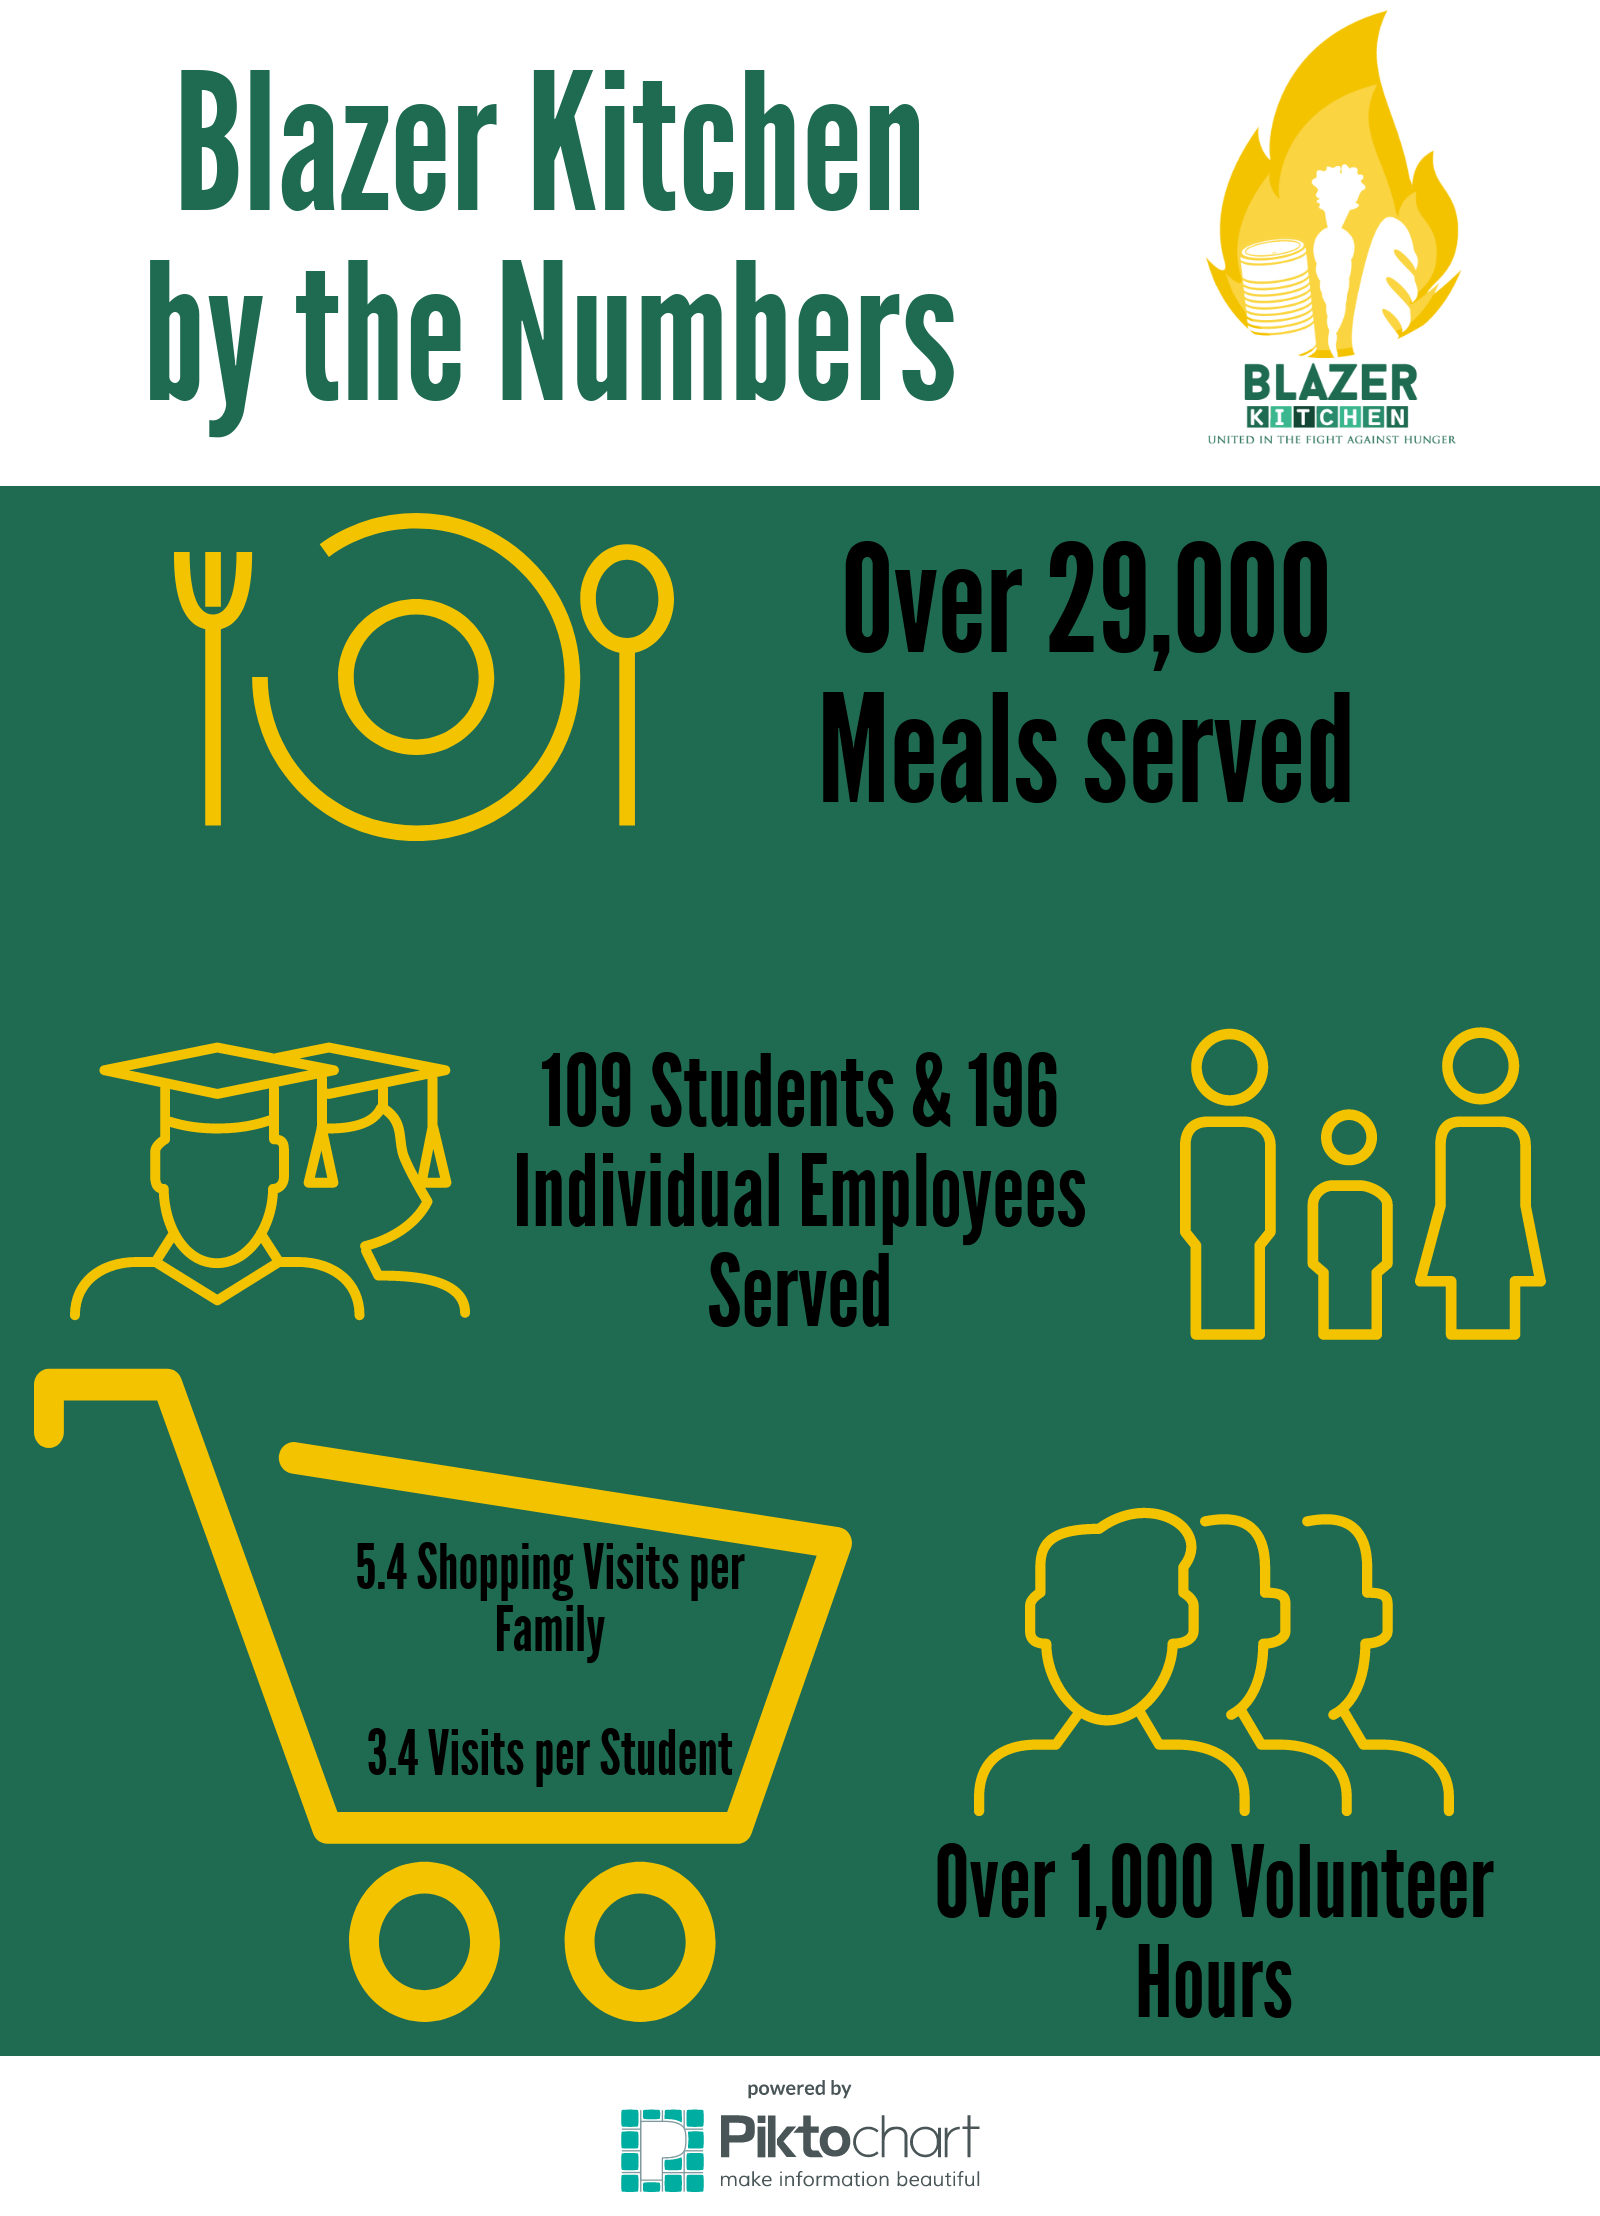 Blazer Kitchen by the Numbers